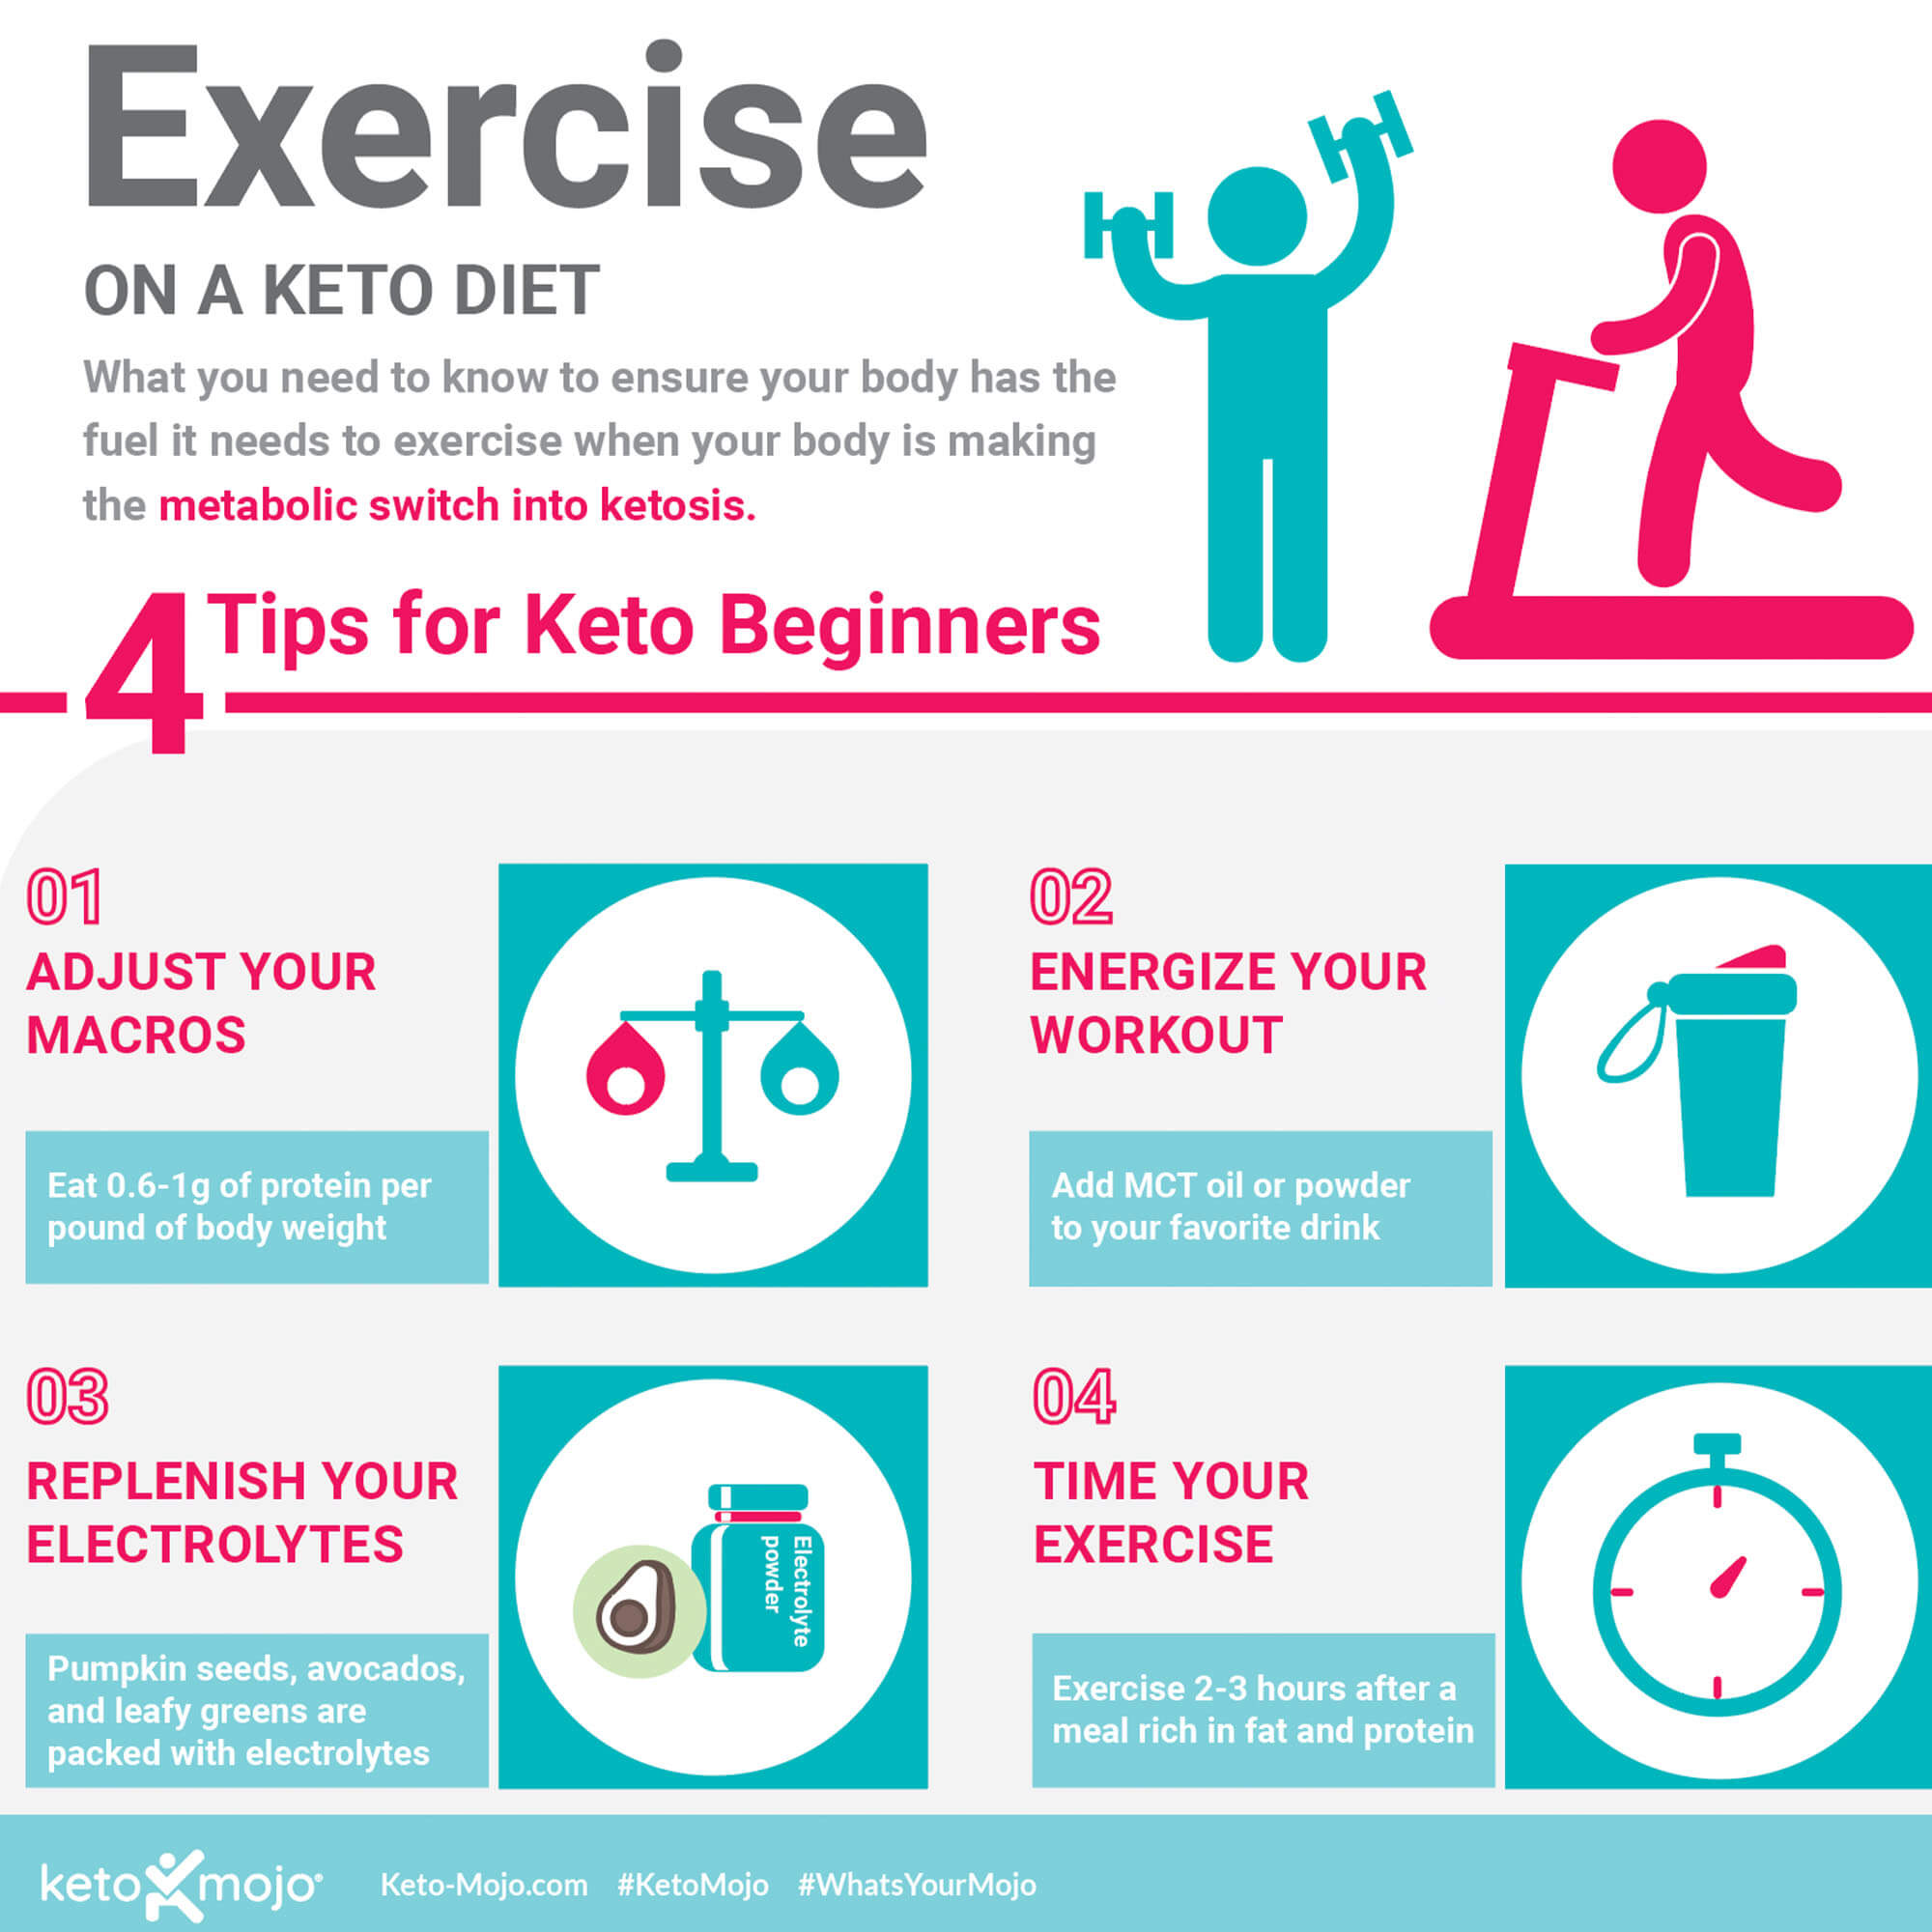 Keto-Mojo Exercise tips